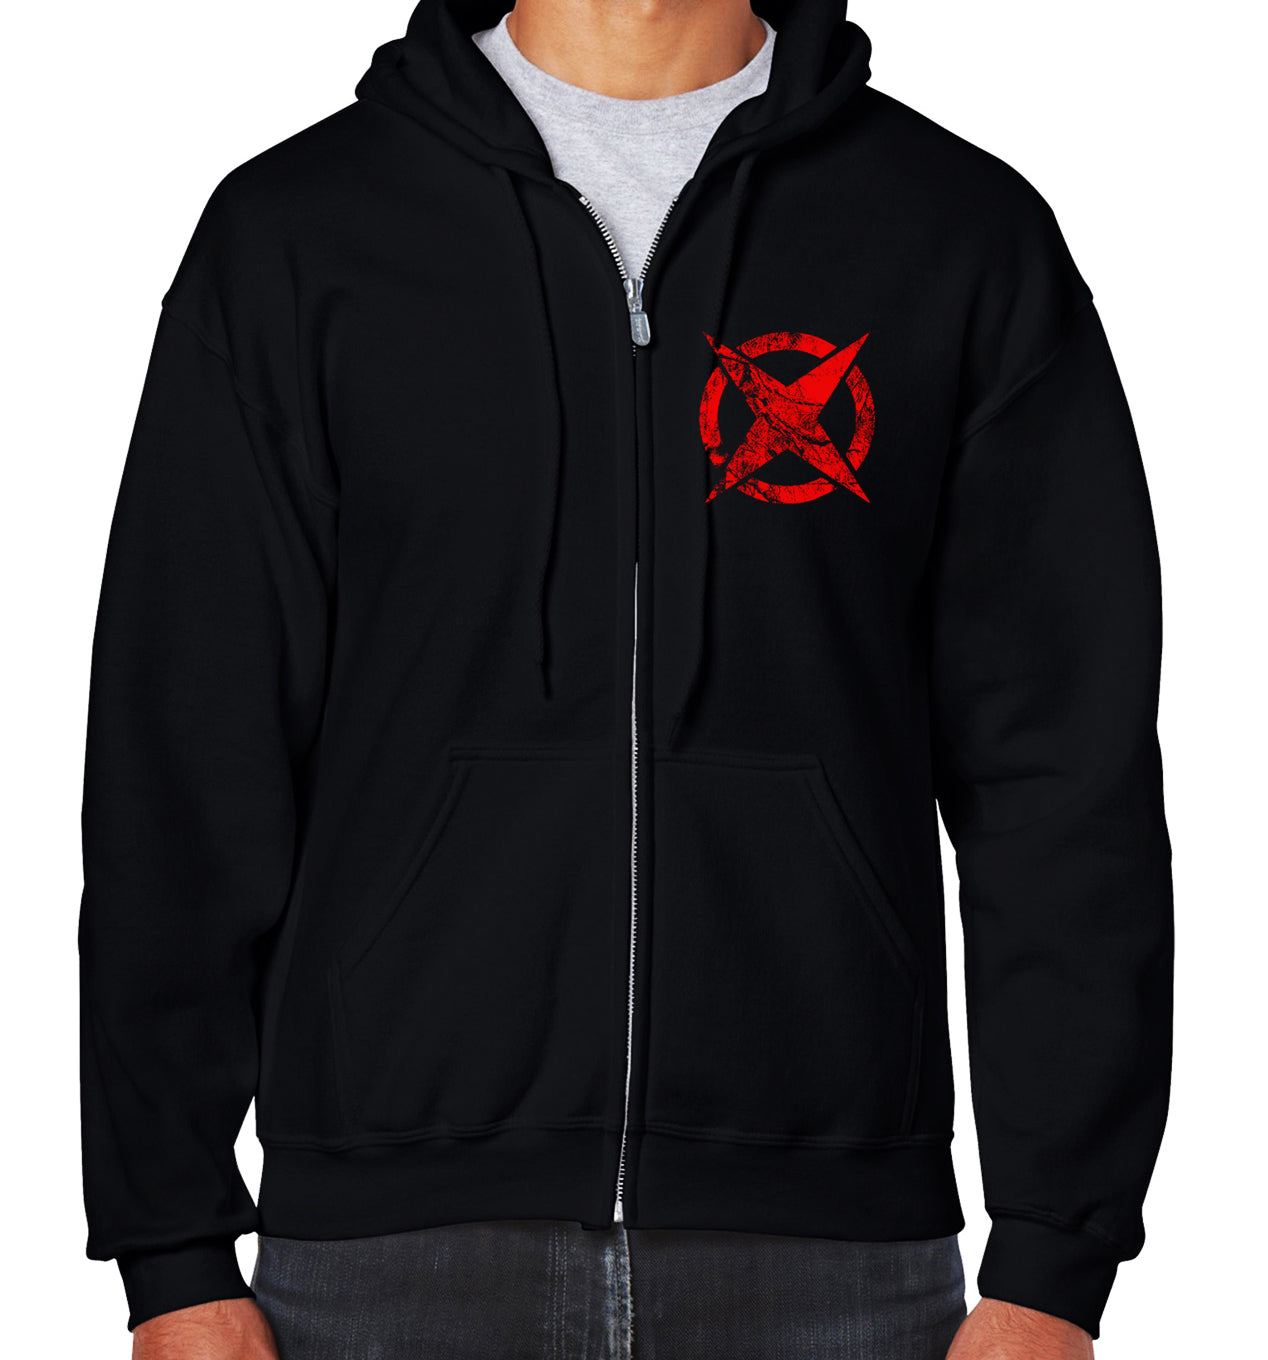 The Devil Inside Lightweight Zip Hoodie - FREE SHIPPING!